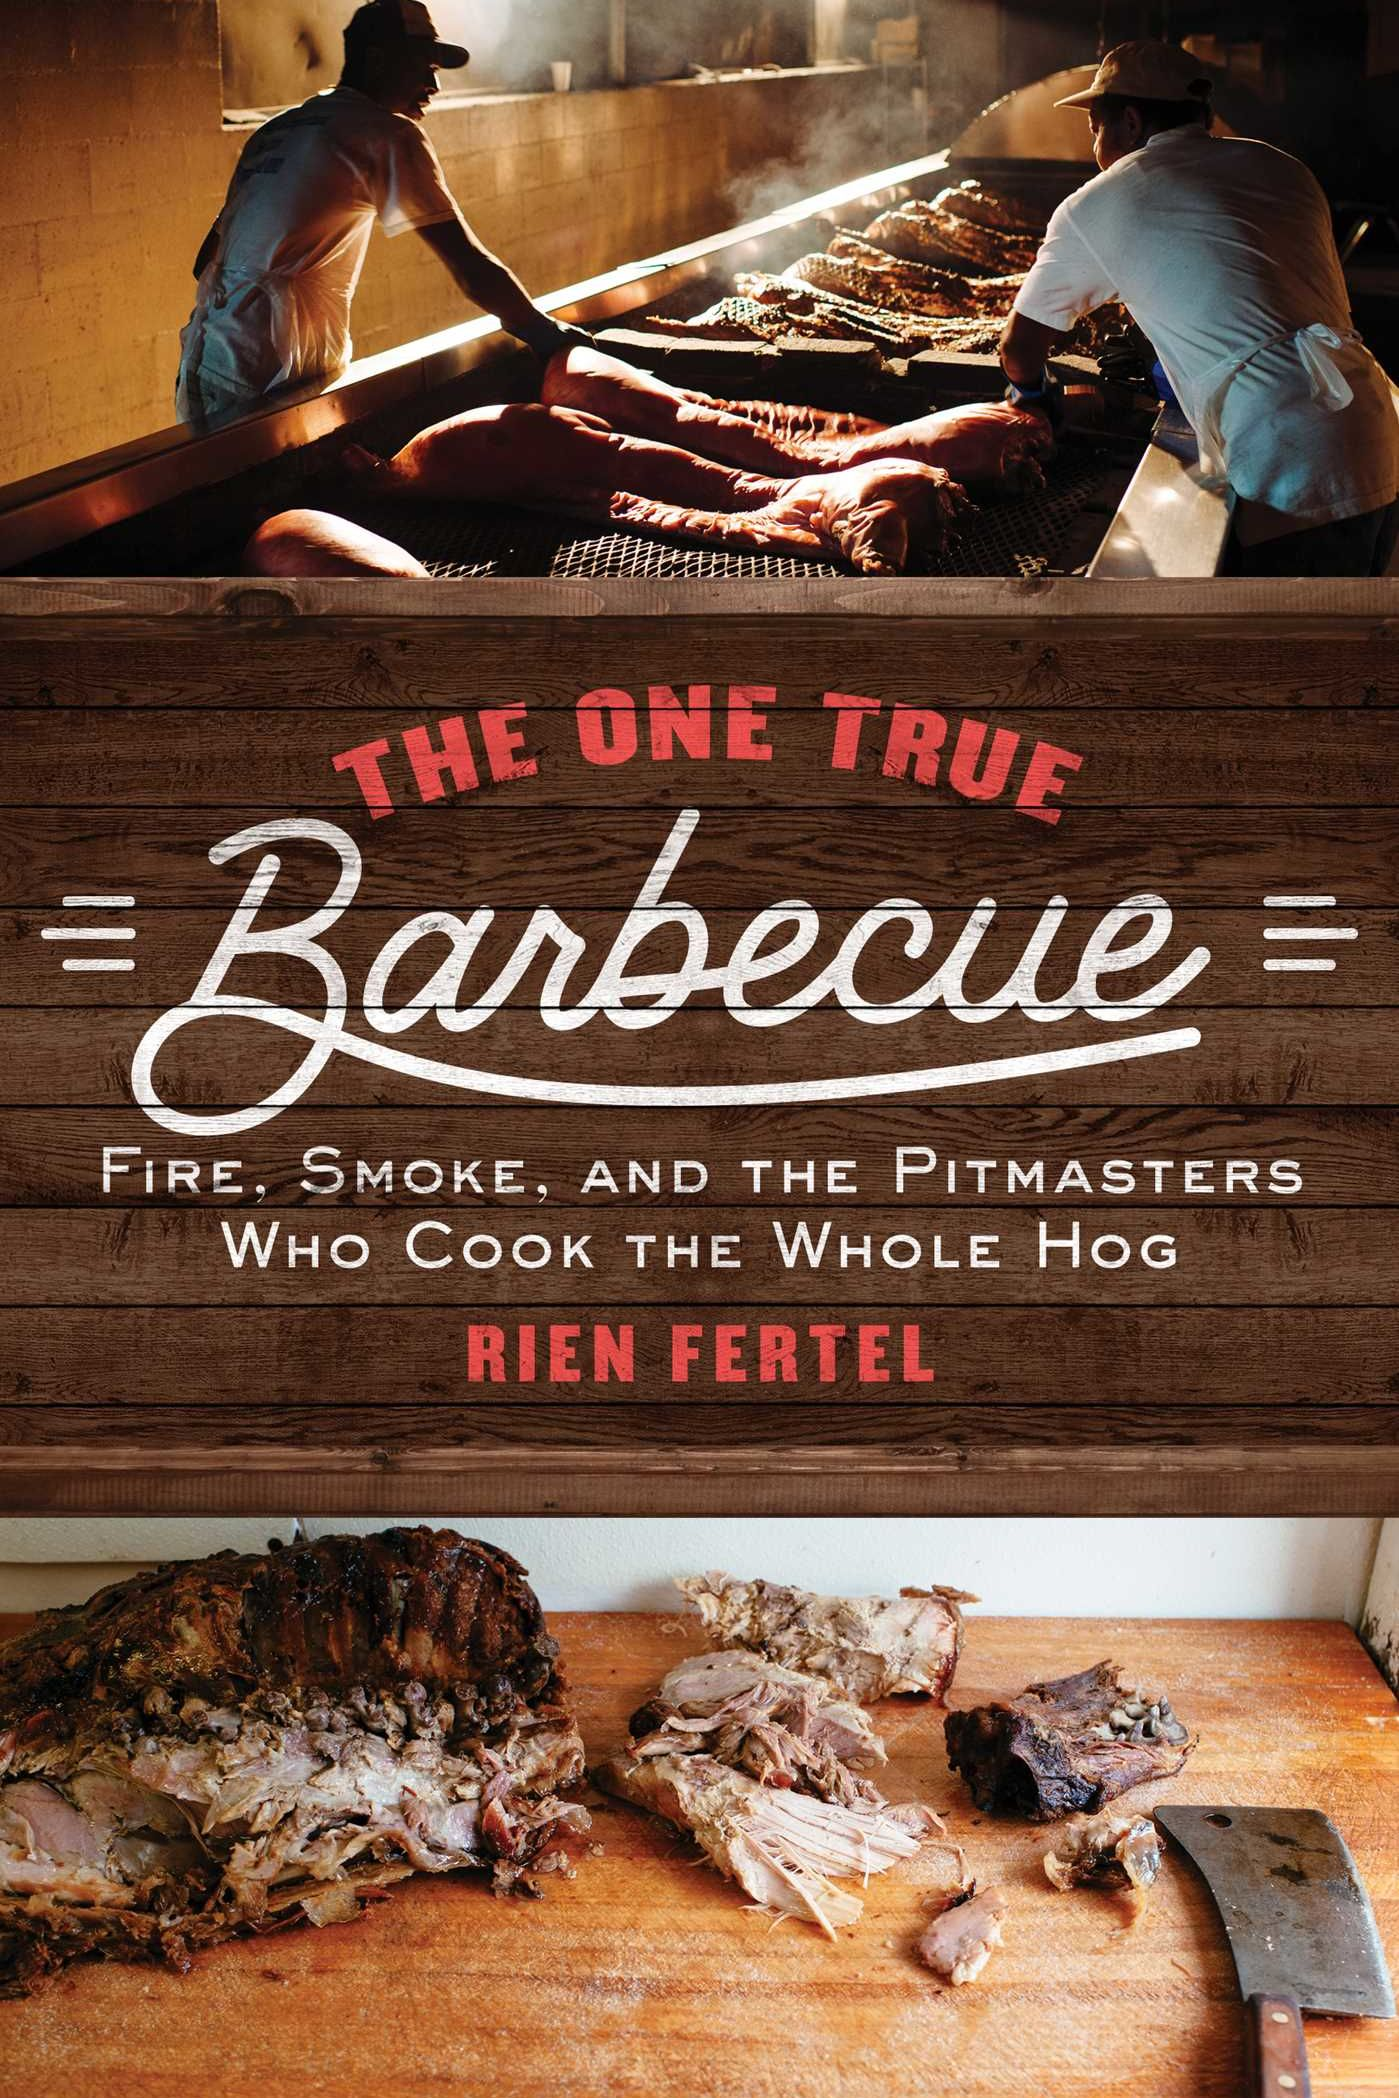 A Quest for the One True Barbecue